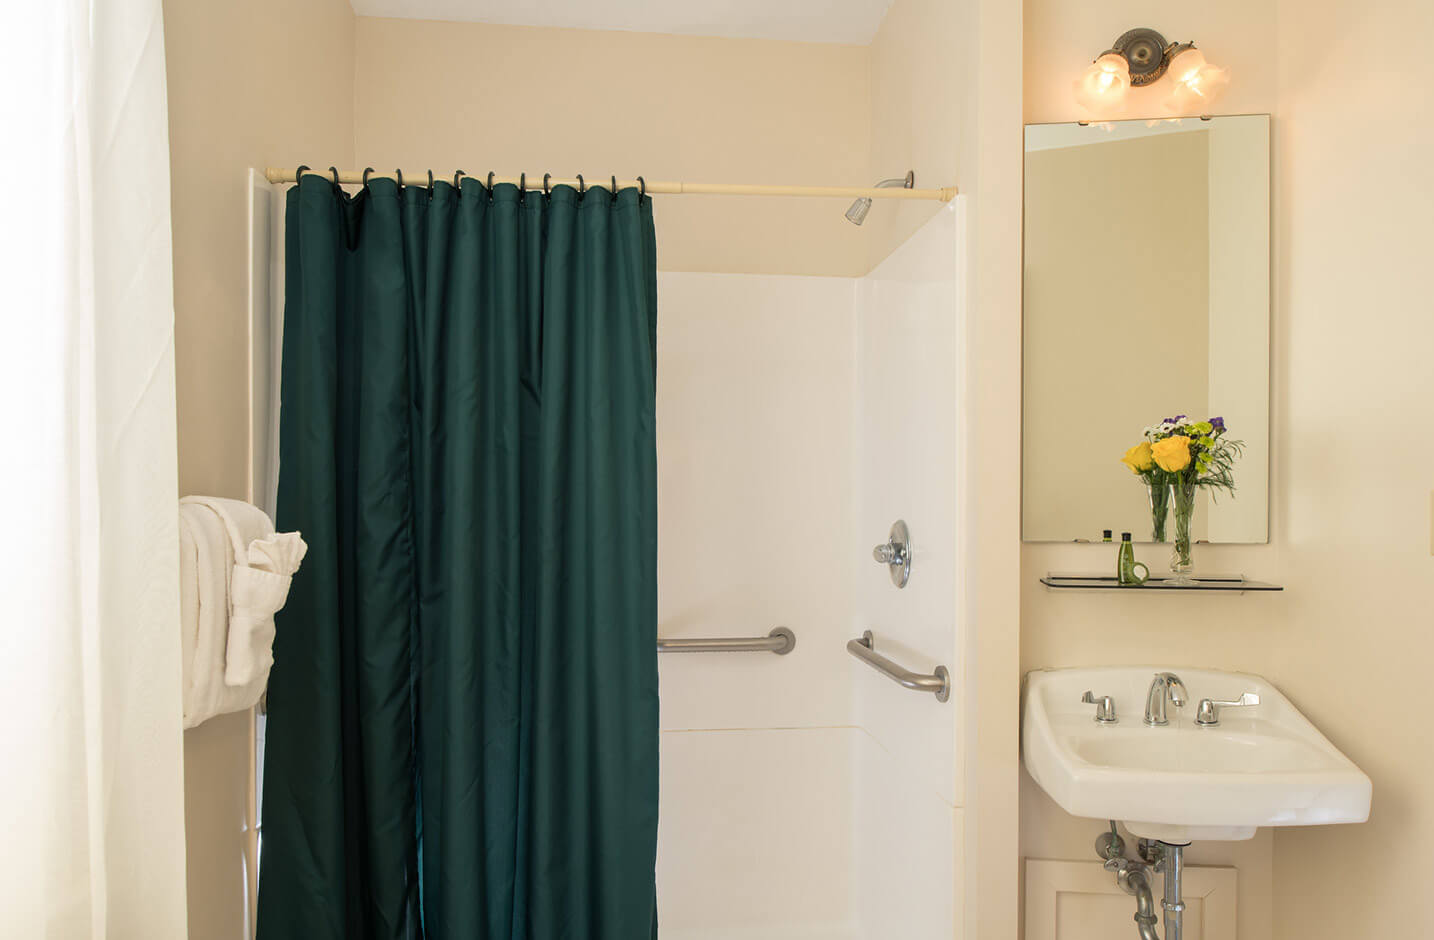 Best Places to Stay in the Finger Lakes - Room 2 bathroom